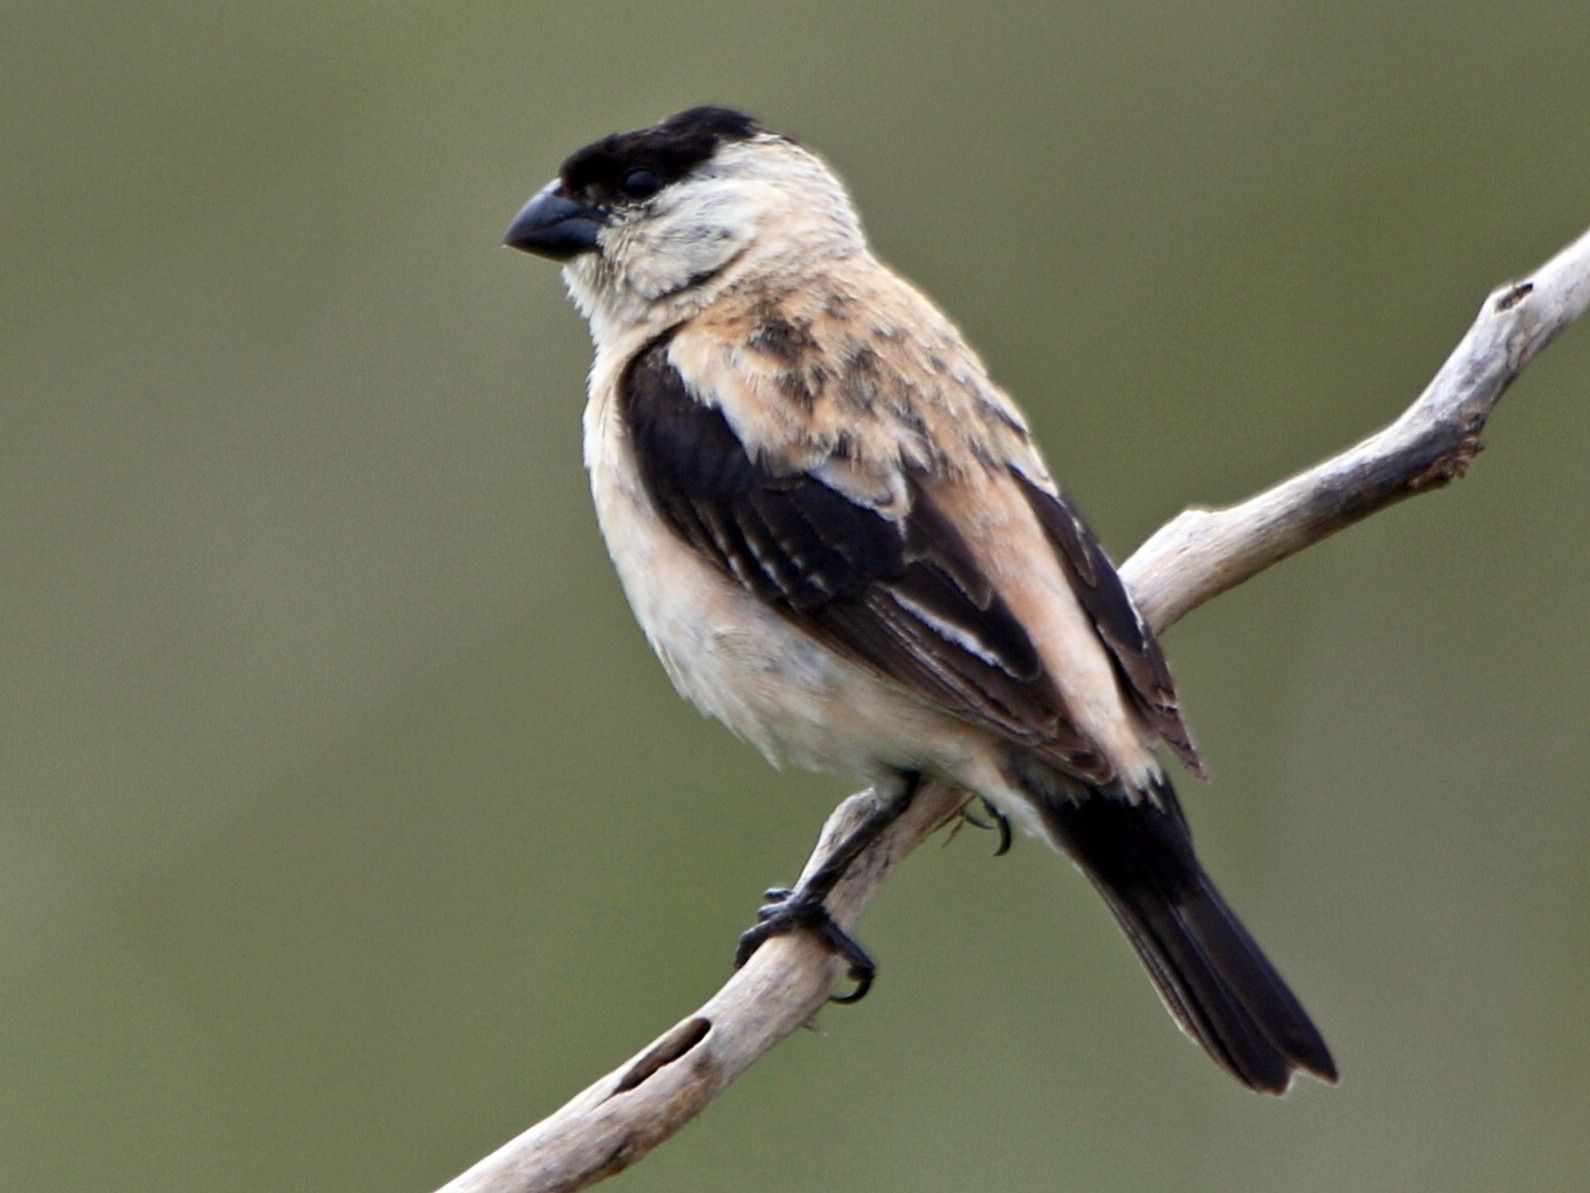 Pearly-bellied Seedeater - Thompson Ian